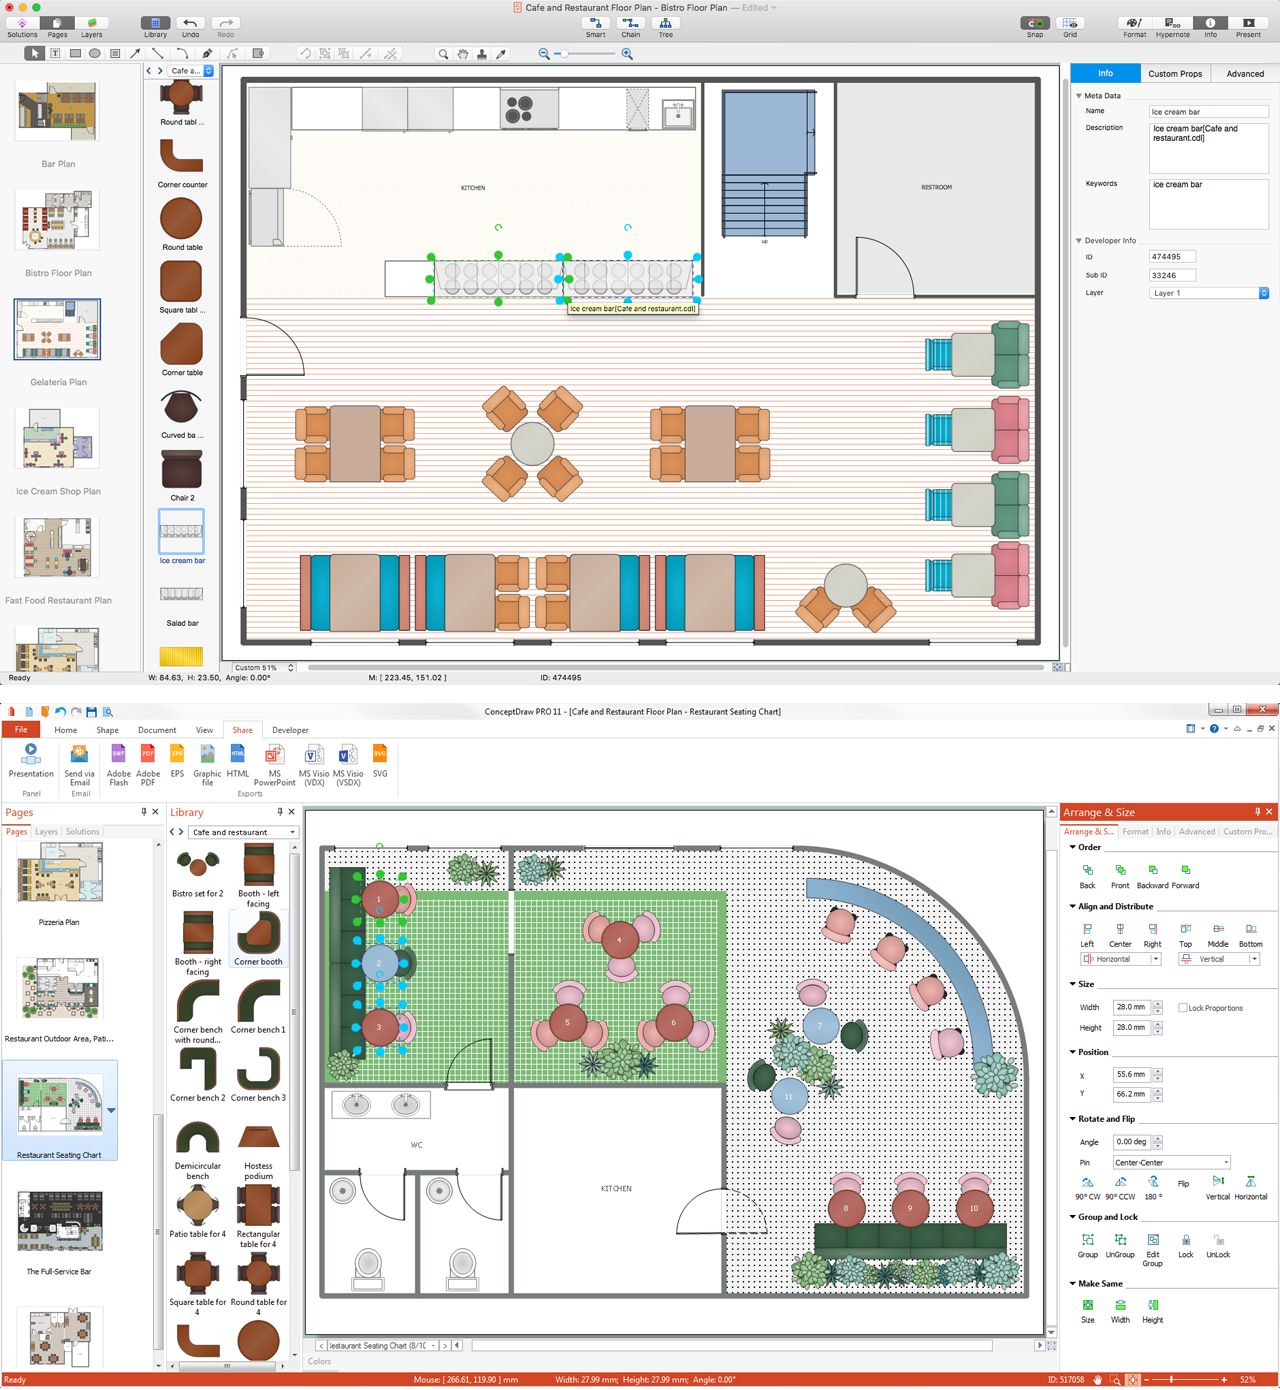 Interior design software building plan examples for Building layout software